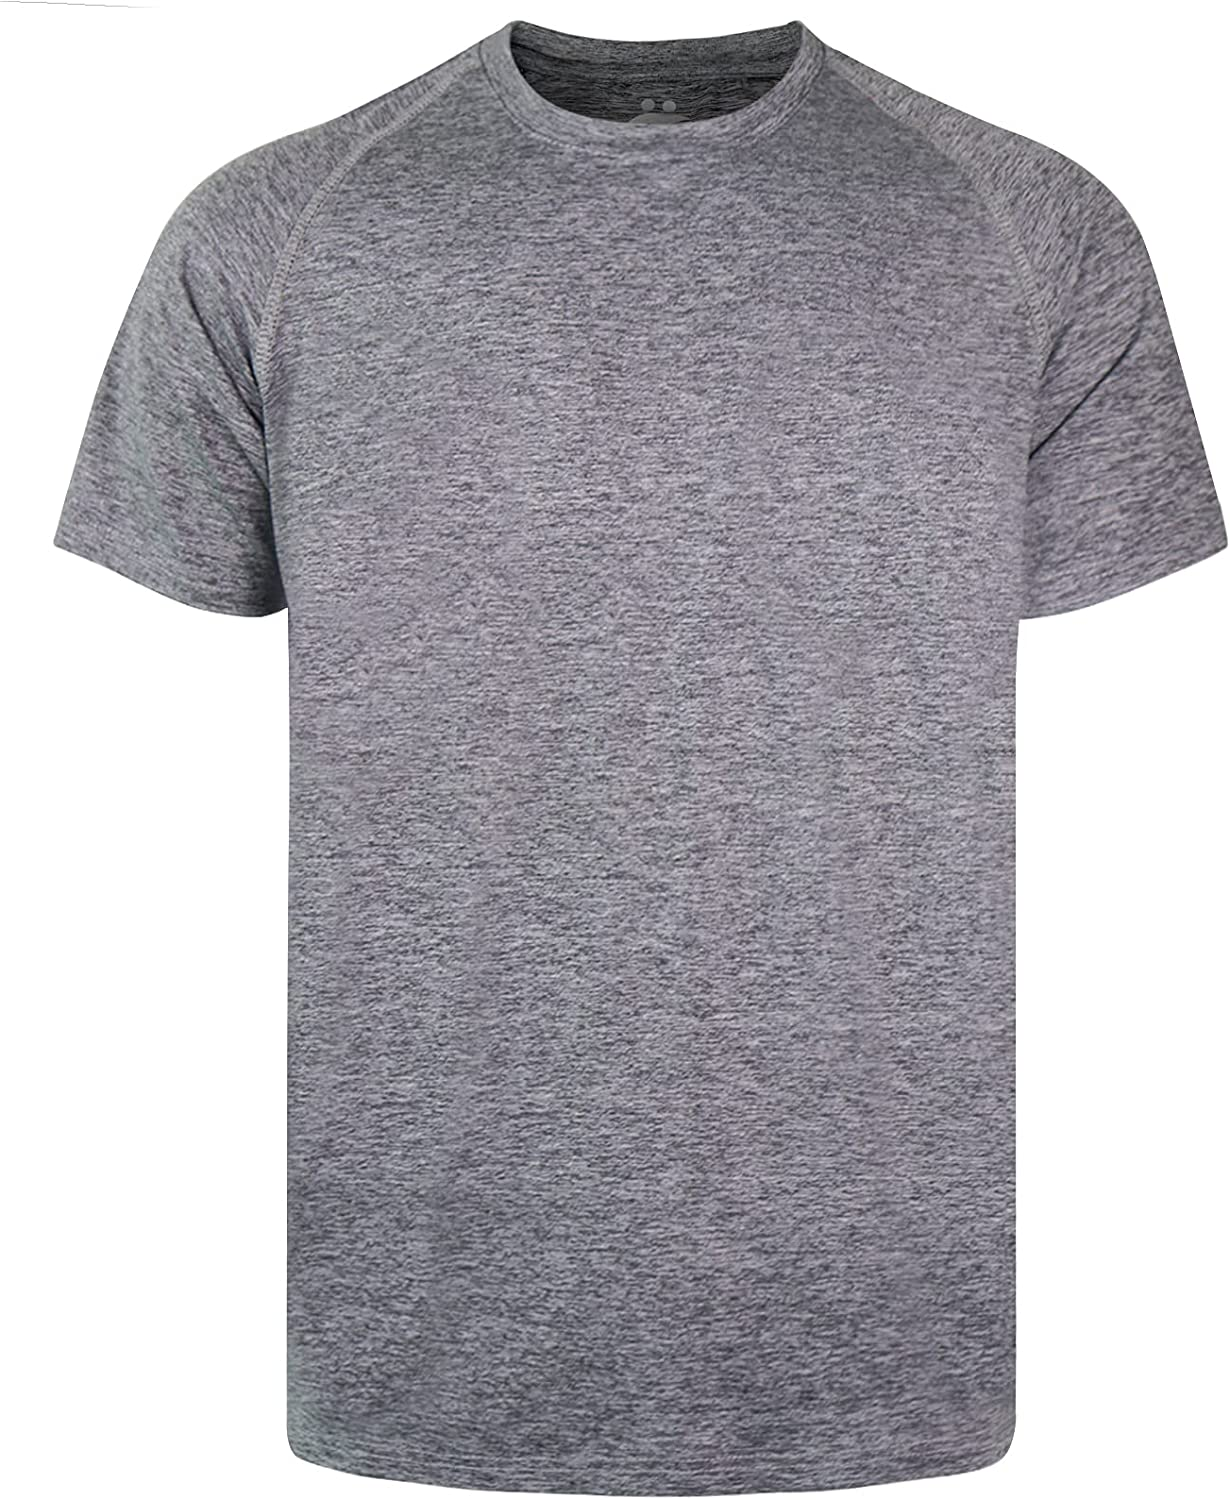 Men Running Workout Athletic T-Shirts Reservation - Inexpensive Dry Per Short Fit Sleeve